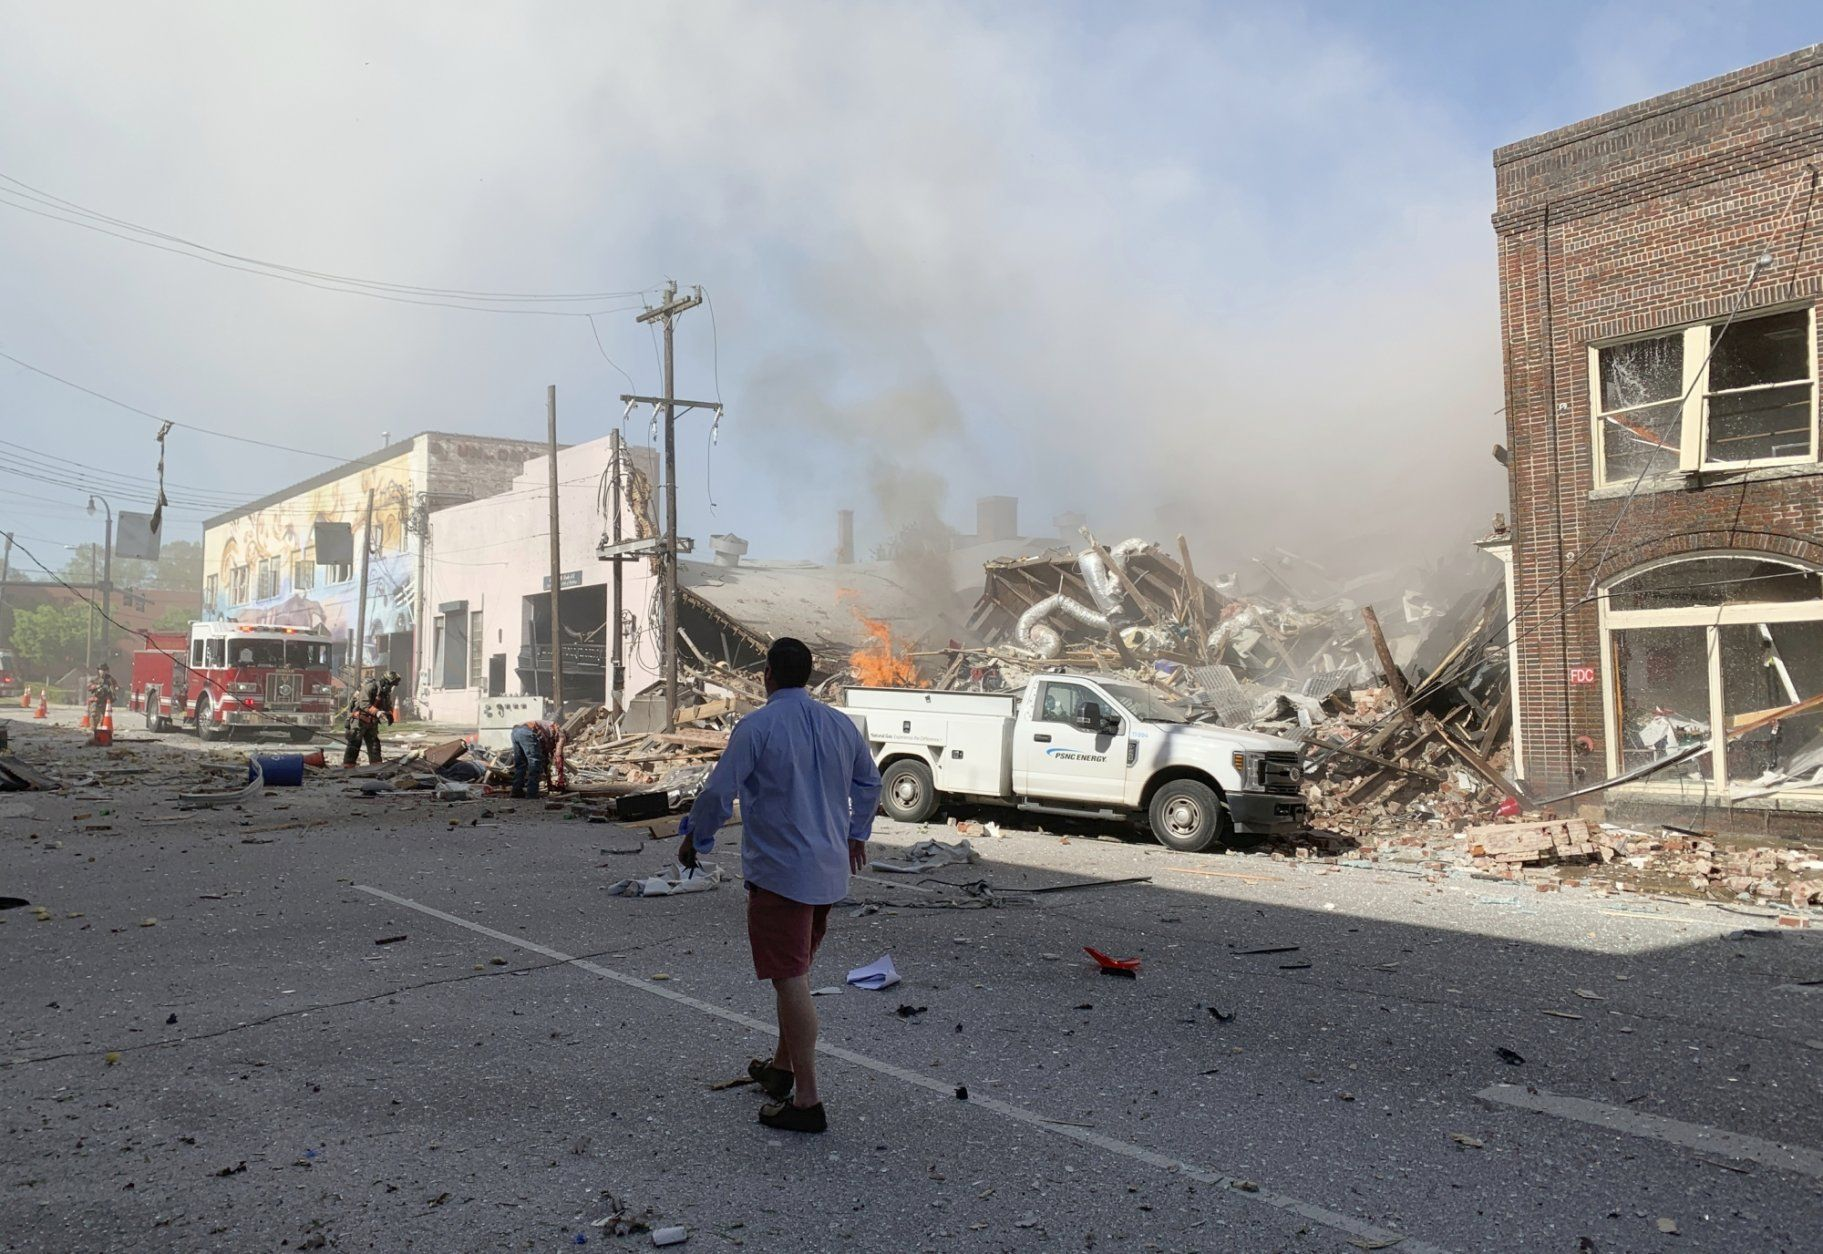 In this photo released by Jim Rogalski, firefighters help injured people after a building exploded, Wednesday, April 10, 2019, in Durham, N.C. (Jim Rogalski via AP)